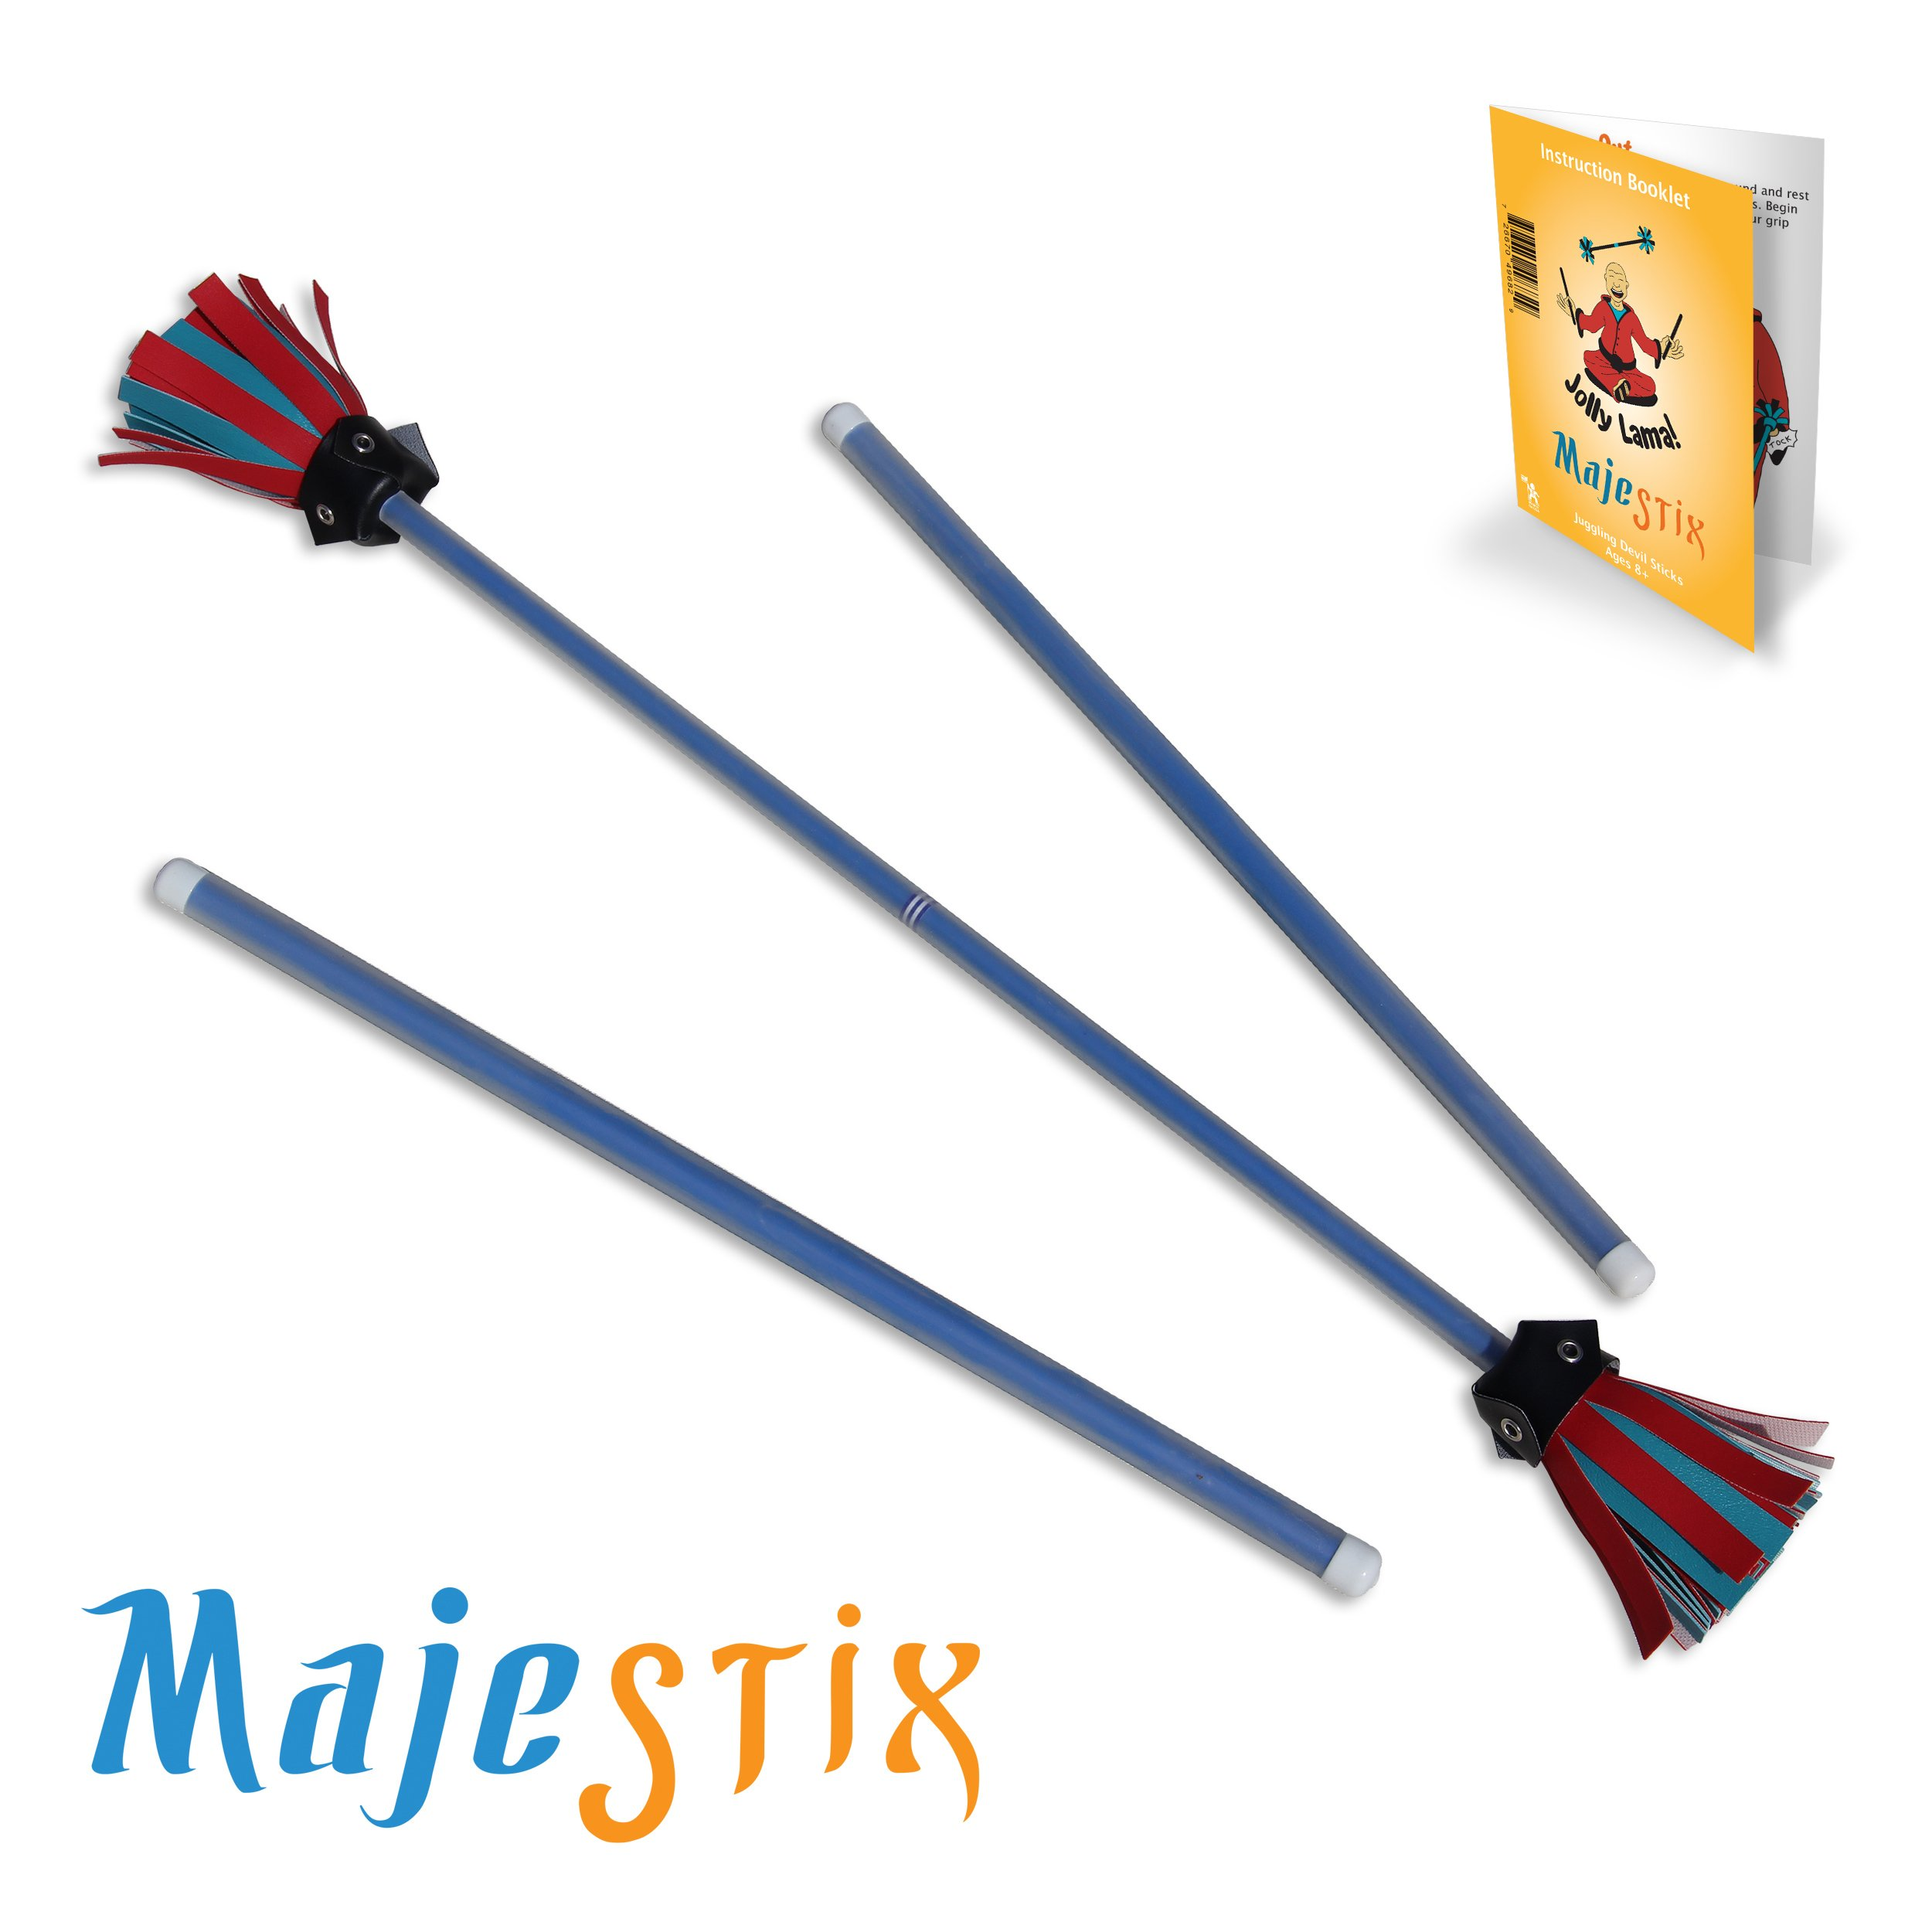 Blue Majestix Juggling Sticks Devil Sticks by Jolly Lama!